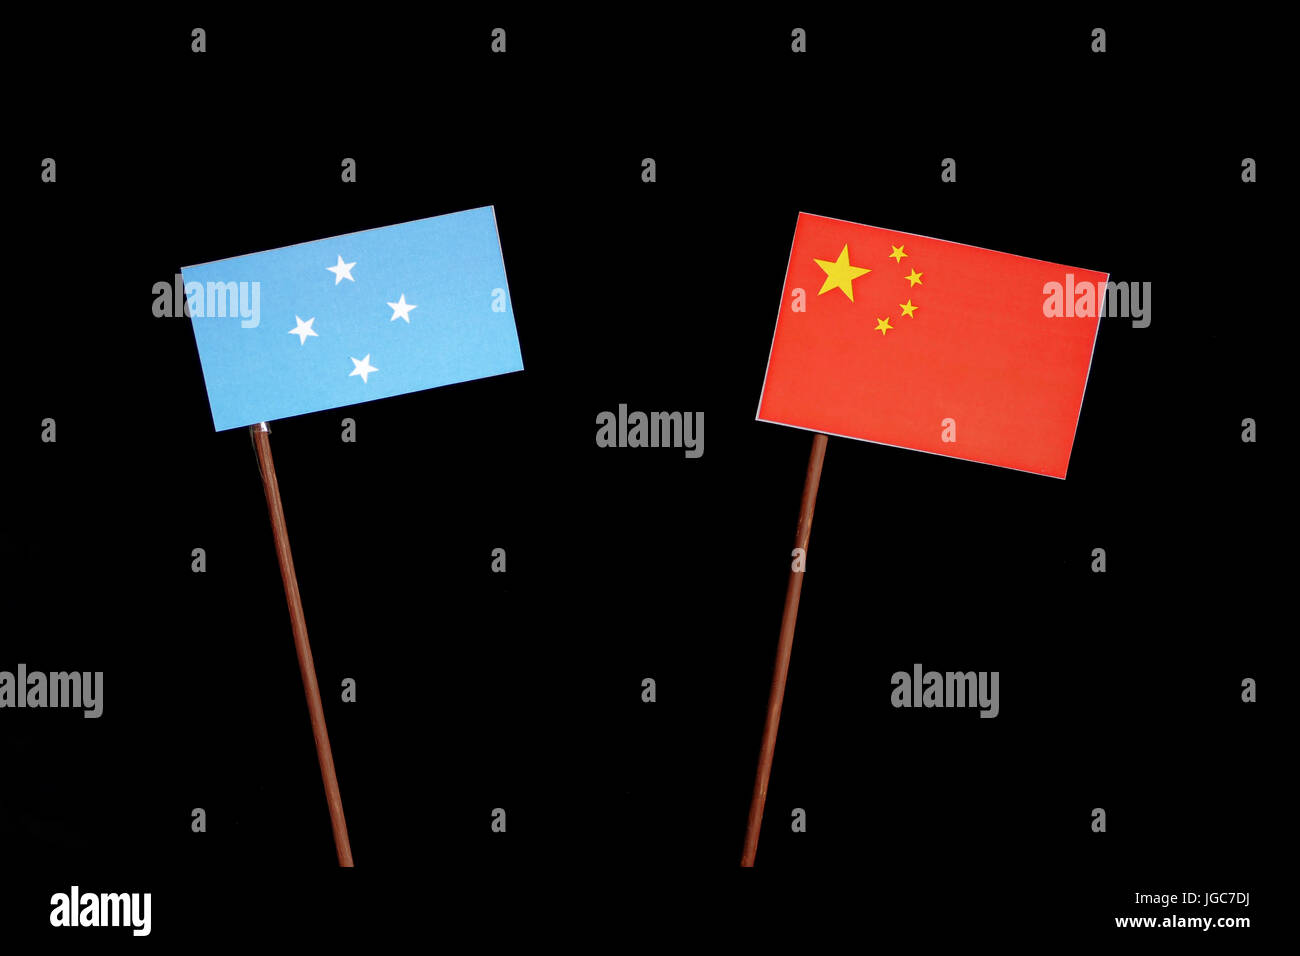 Micronesian flag with Chinese flag isolated on black background - Stock Image